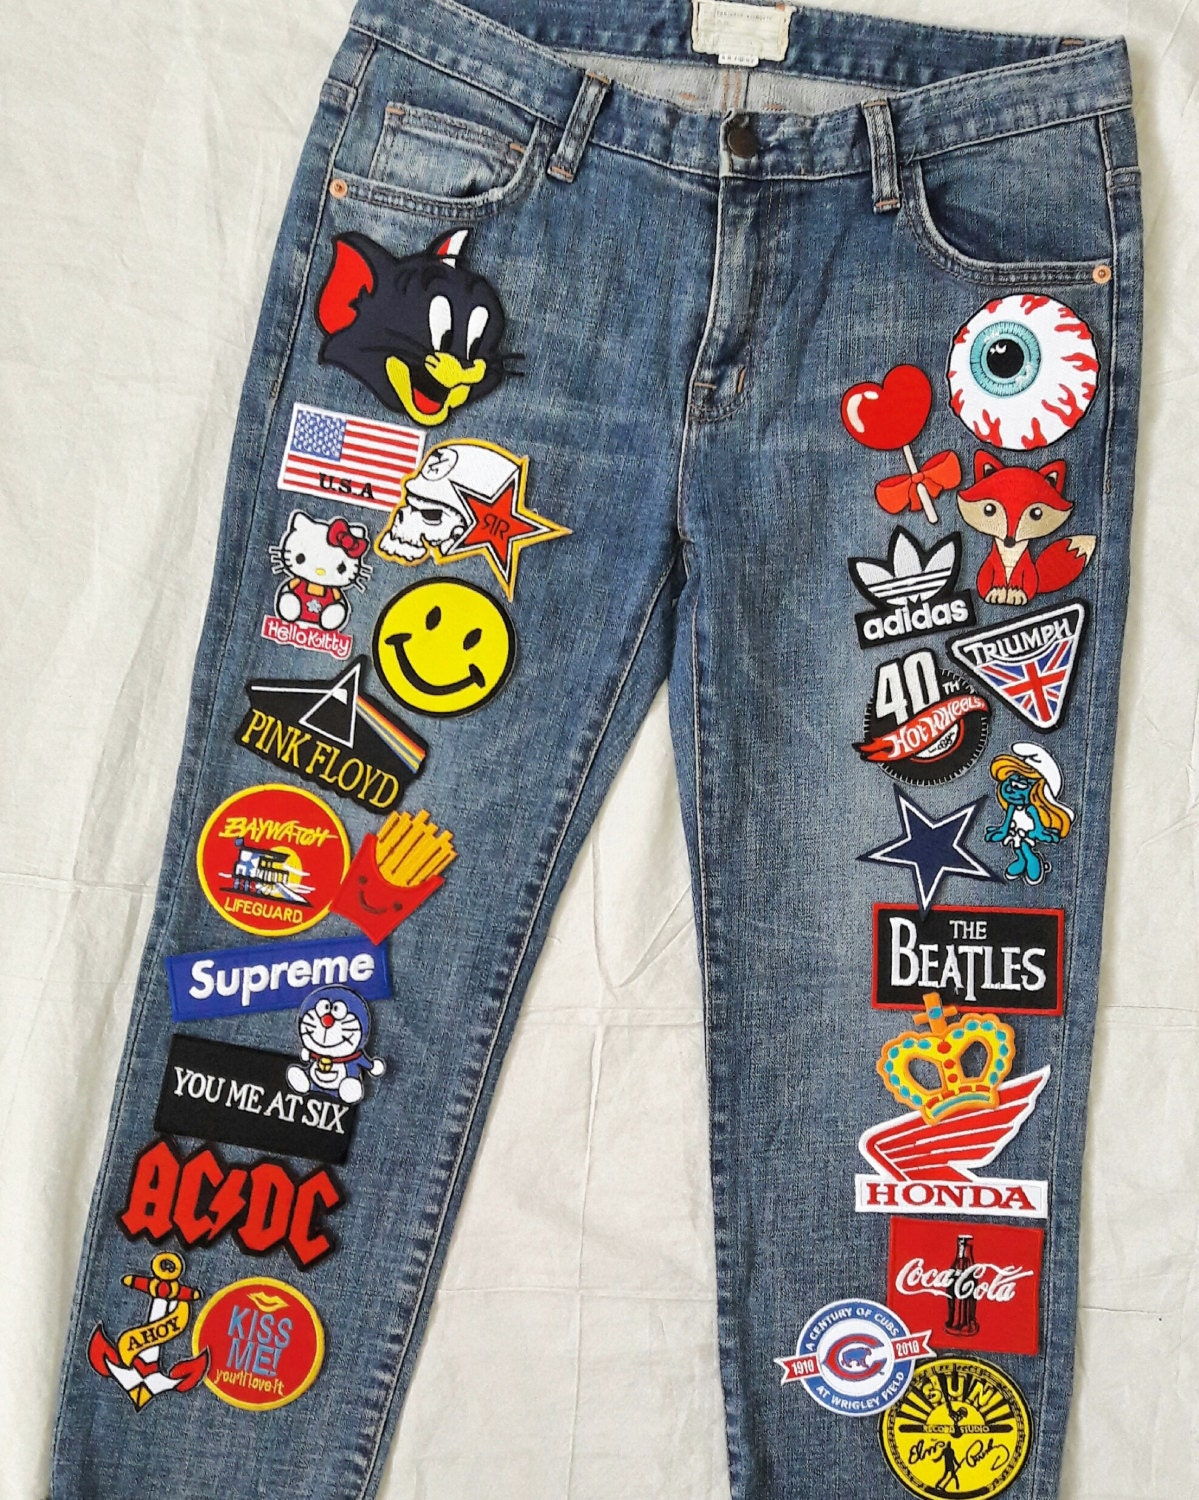 Patched Denim / Patched Jeans / Reworked Vintage Jeans with